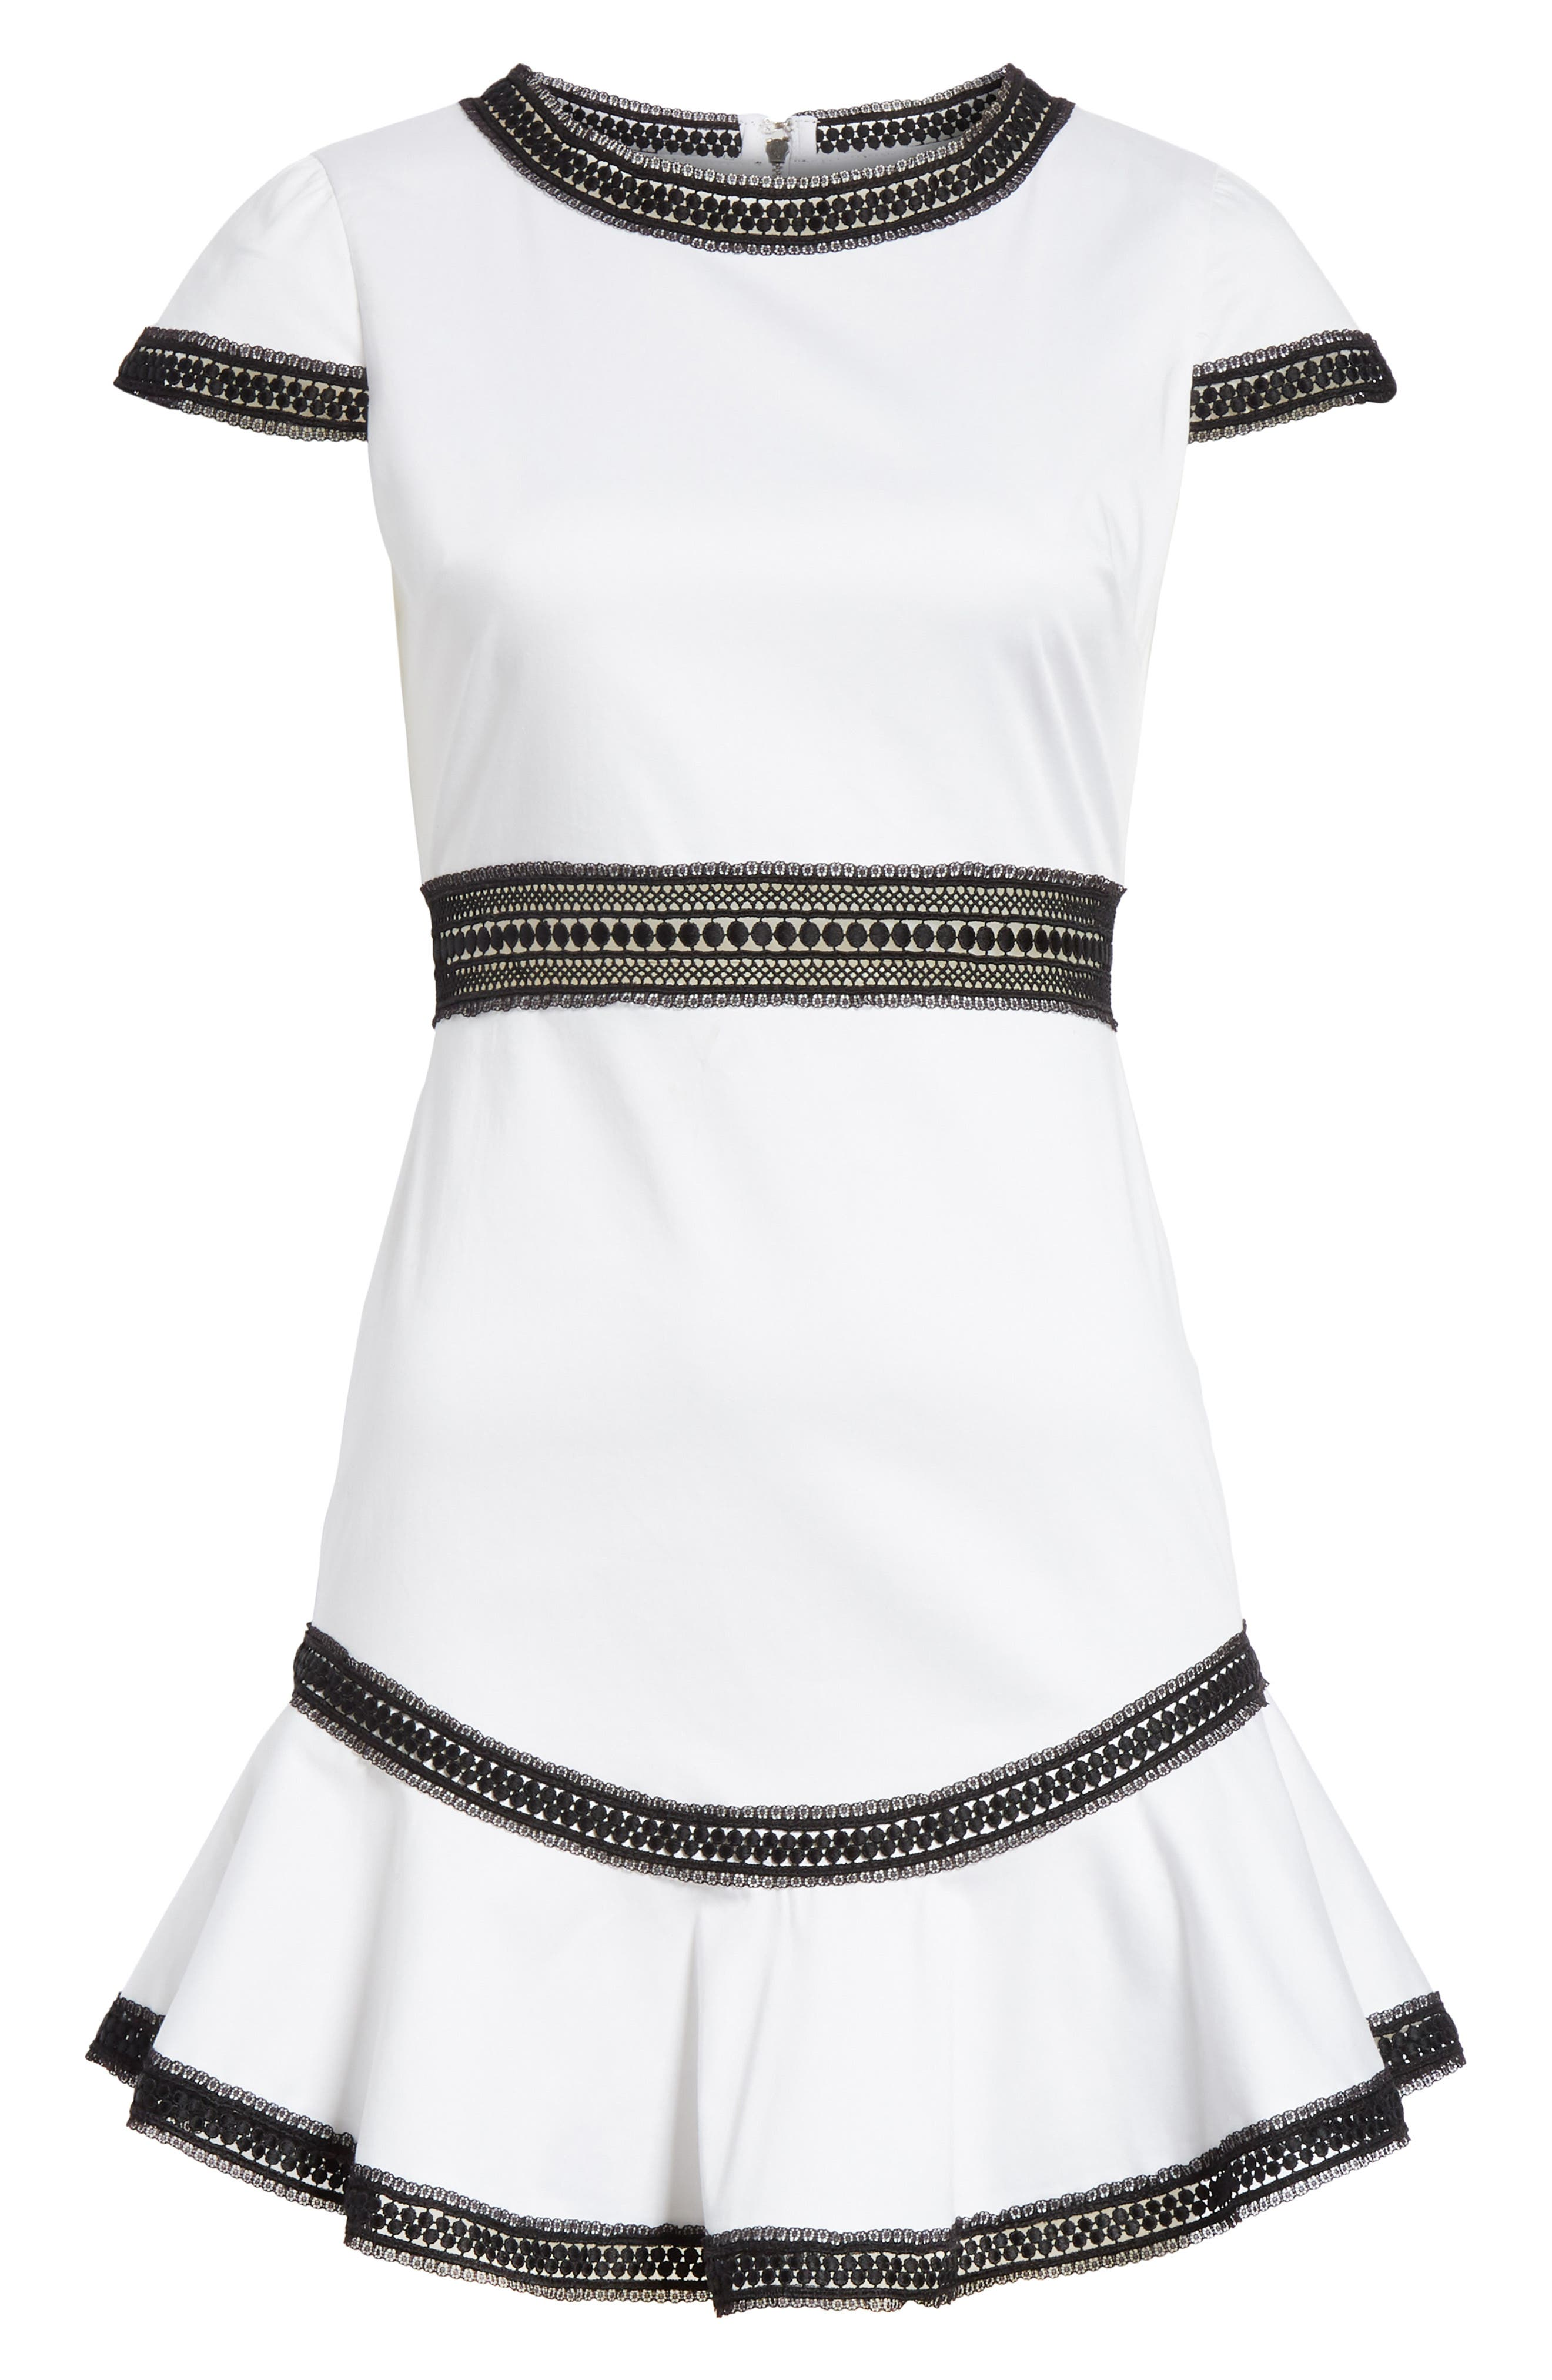 Rapunzel Stretch Cotton Fit & Flare Minidress,                             Alternate thumbnail 6, color,                             White/ Black